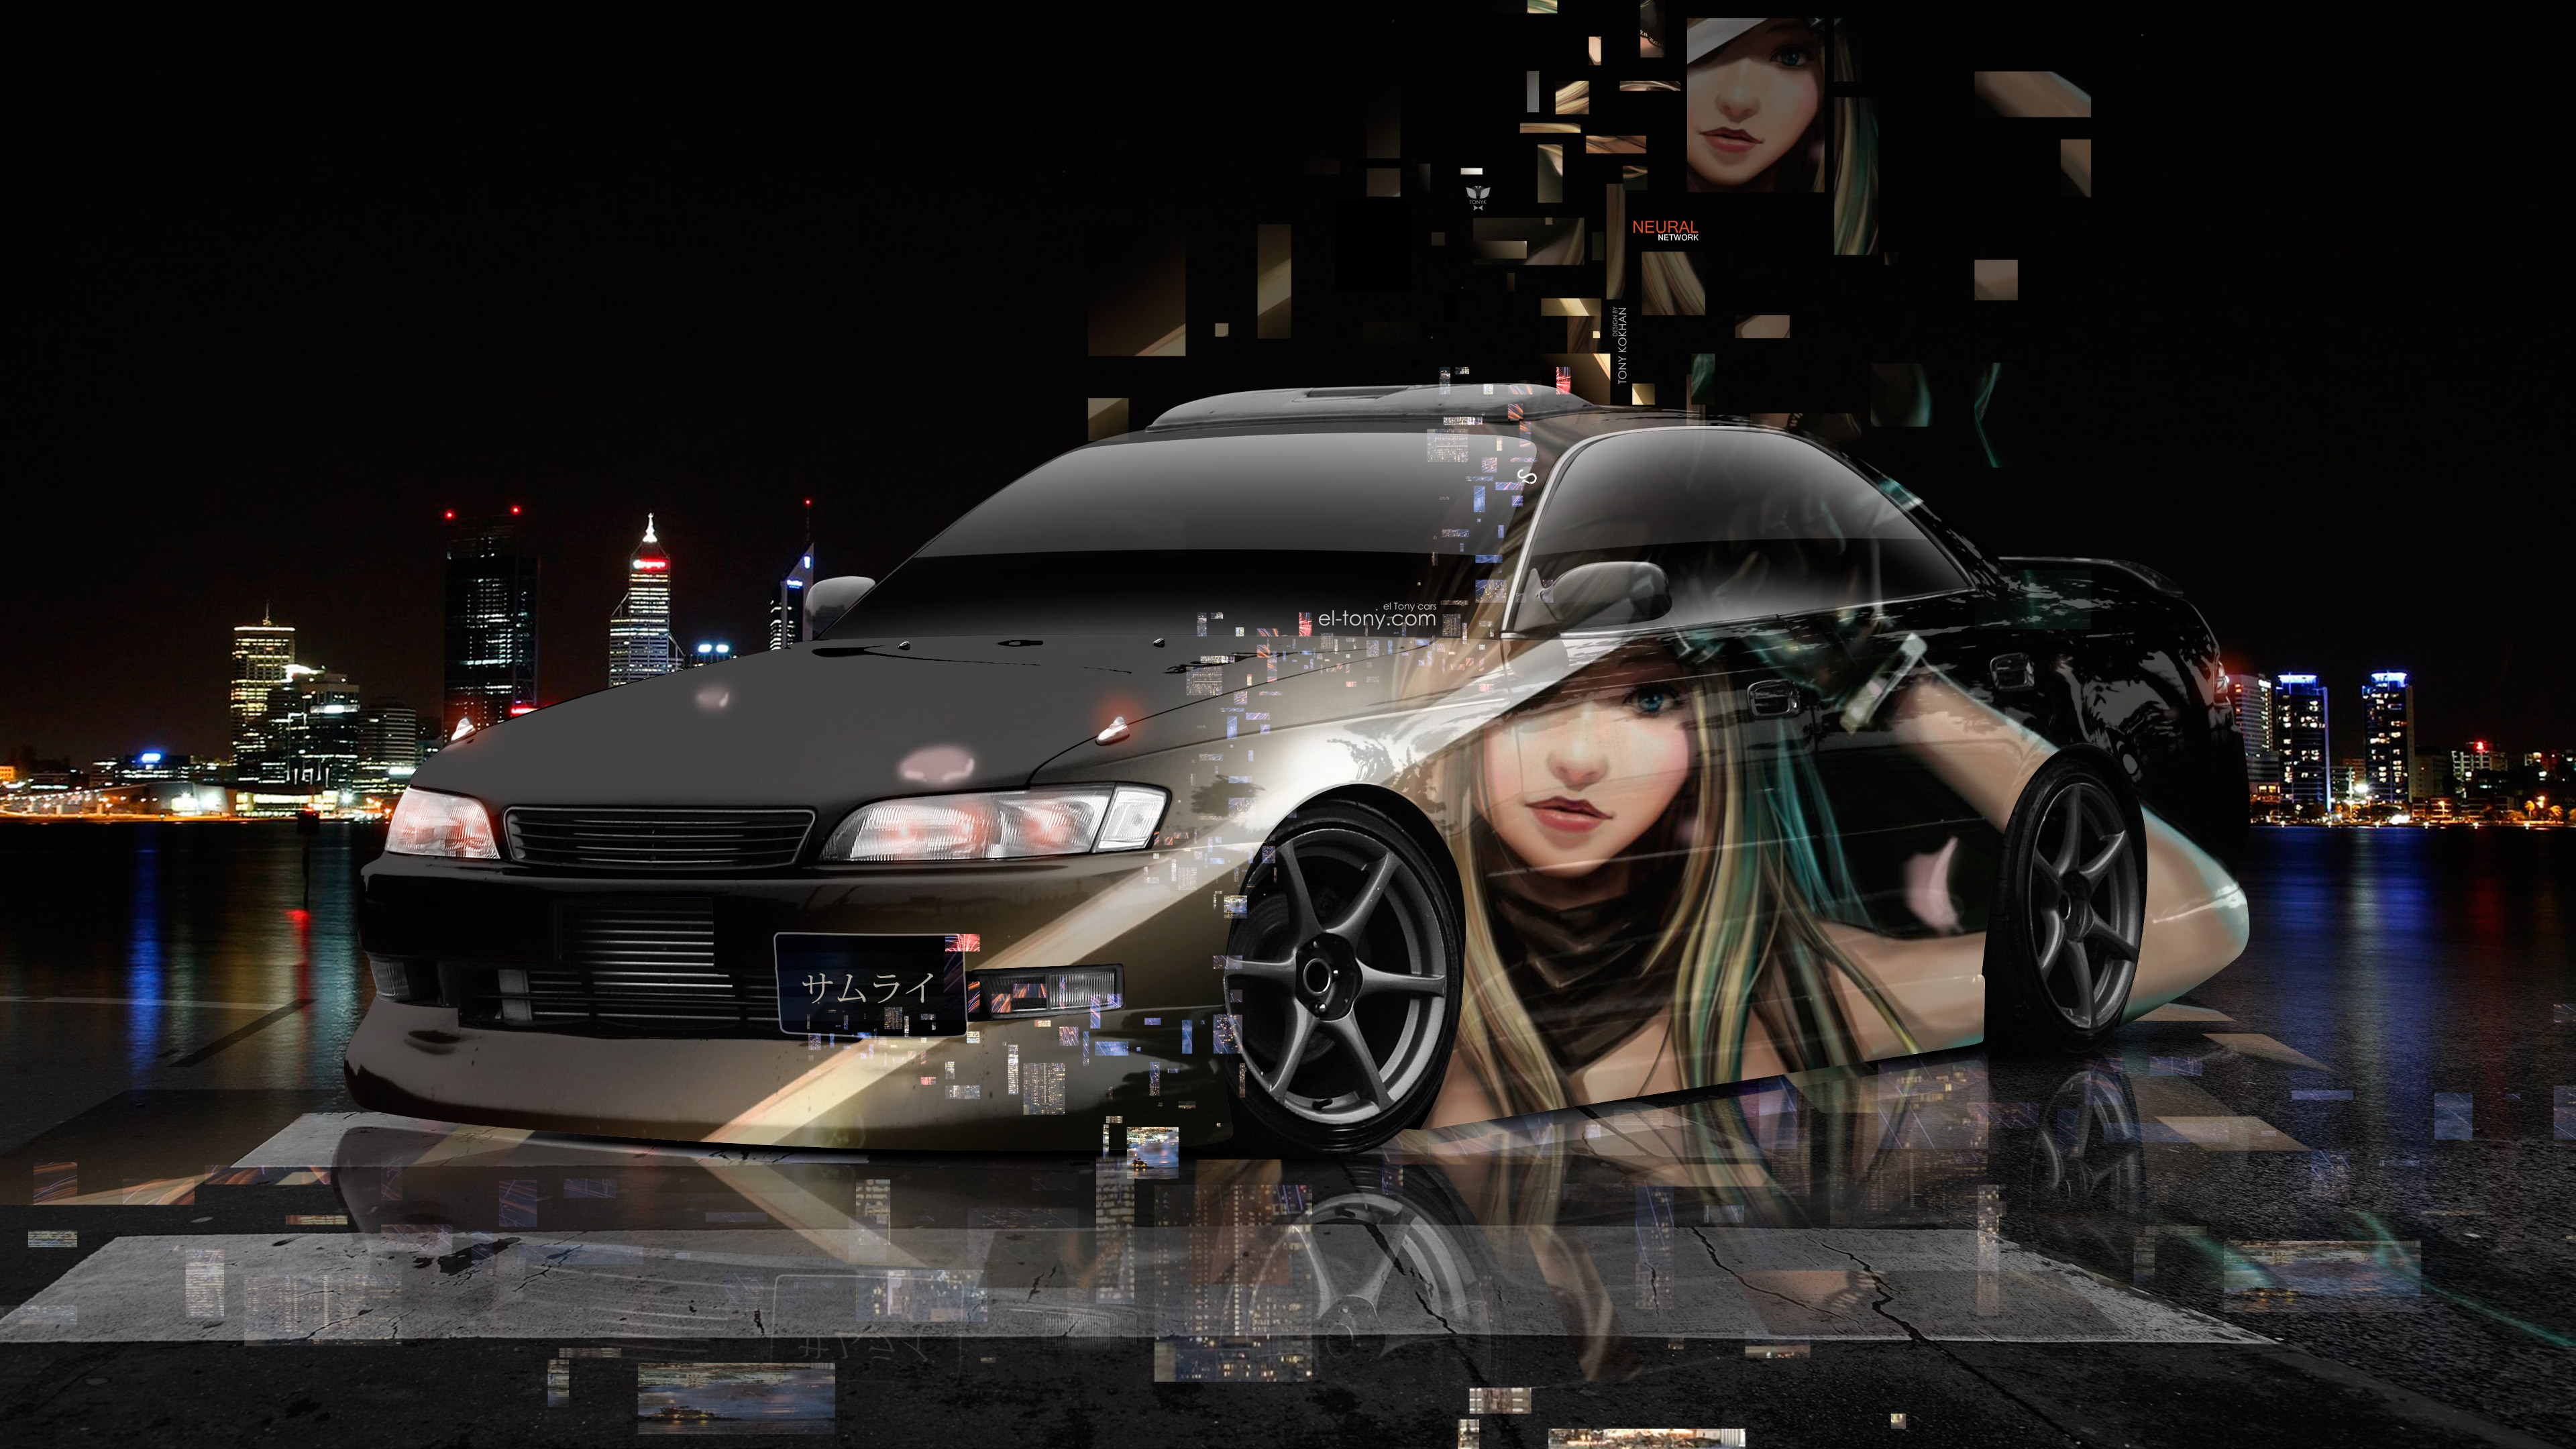 Toyota-Mark2-JZX90-JDM-Tuning-3D-Super-Neural-Network-Anime-Girl-Samurai-Aerography-Night-City-Art-Car-2018-Multicolors-4K-Wallpapers-design-by-Tony-Kokhan-www.el-tony.com-image